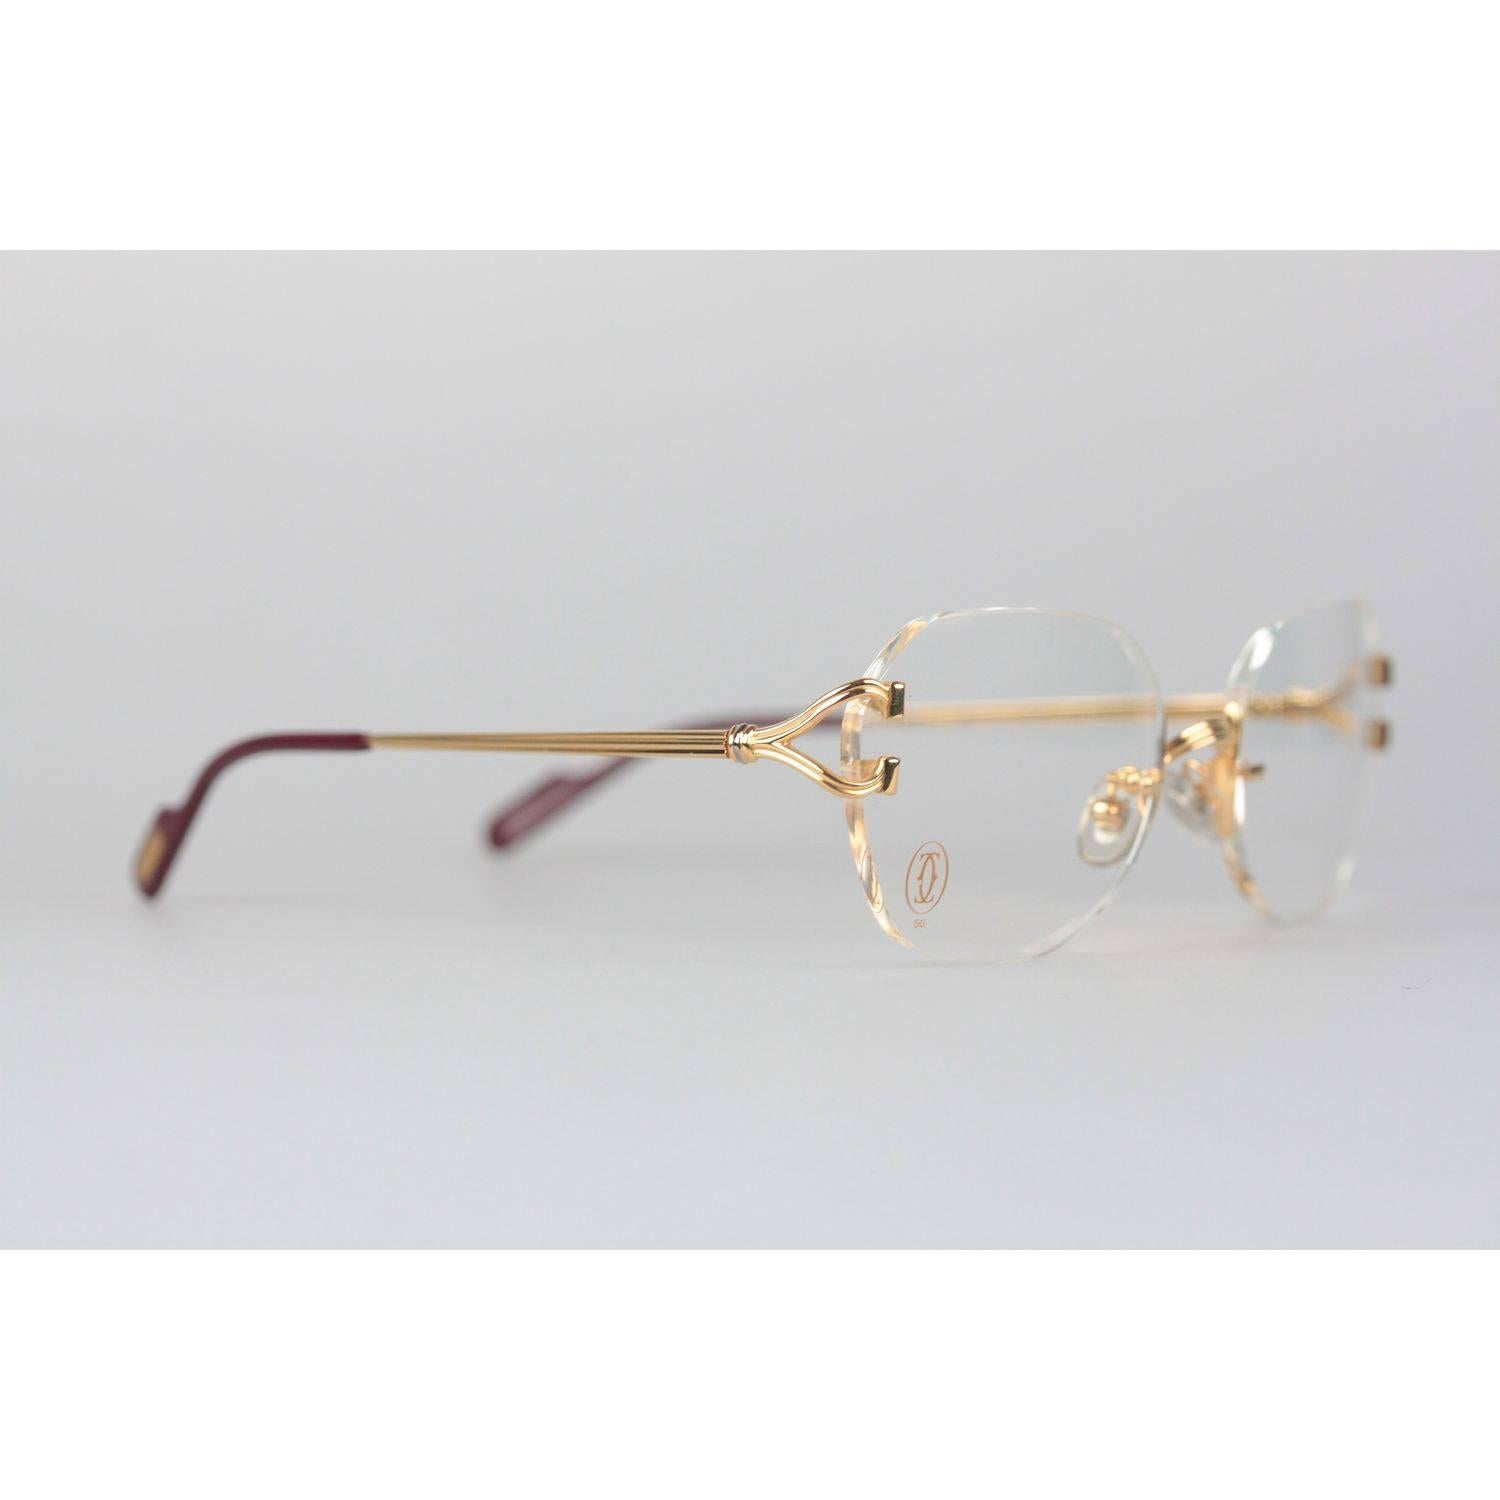 41721ae923 CARTIER Paris Vintage Eyeglasses CHELSEA Gold Rimless Frame 130 Nos For  Sale at 1stdibs